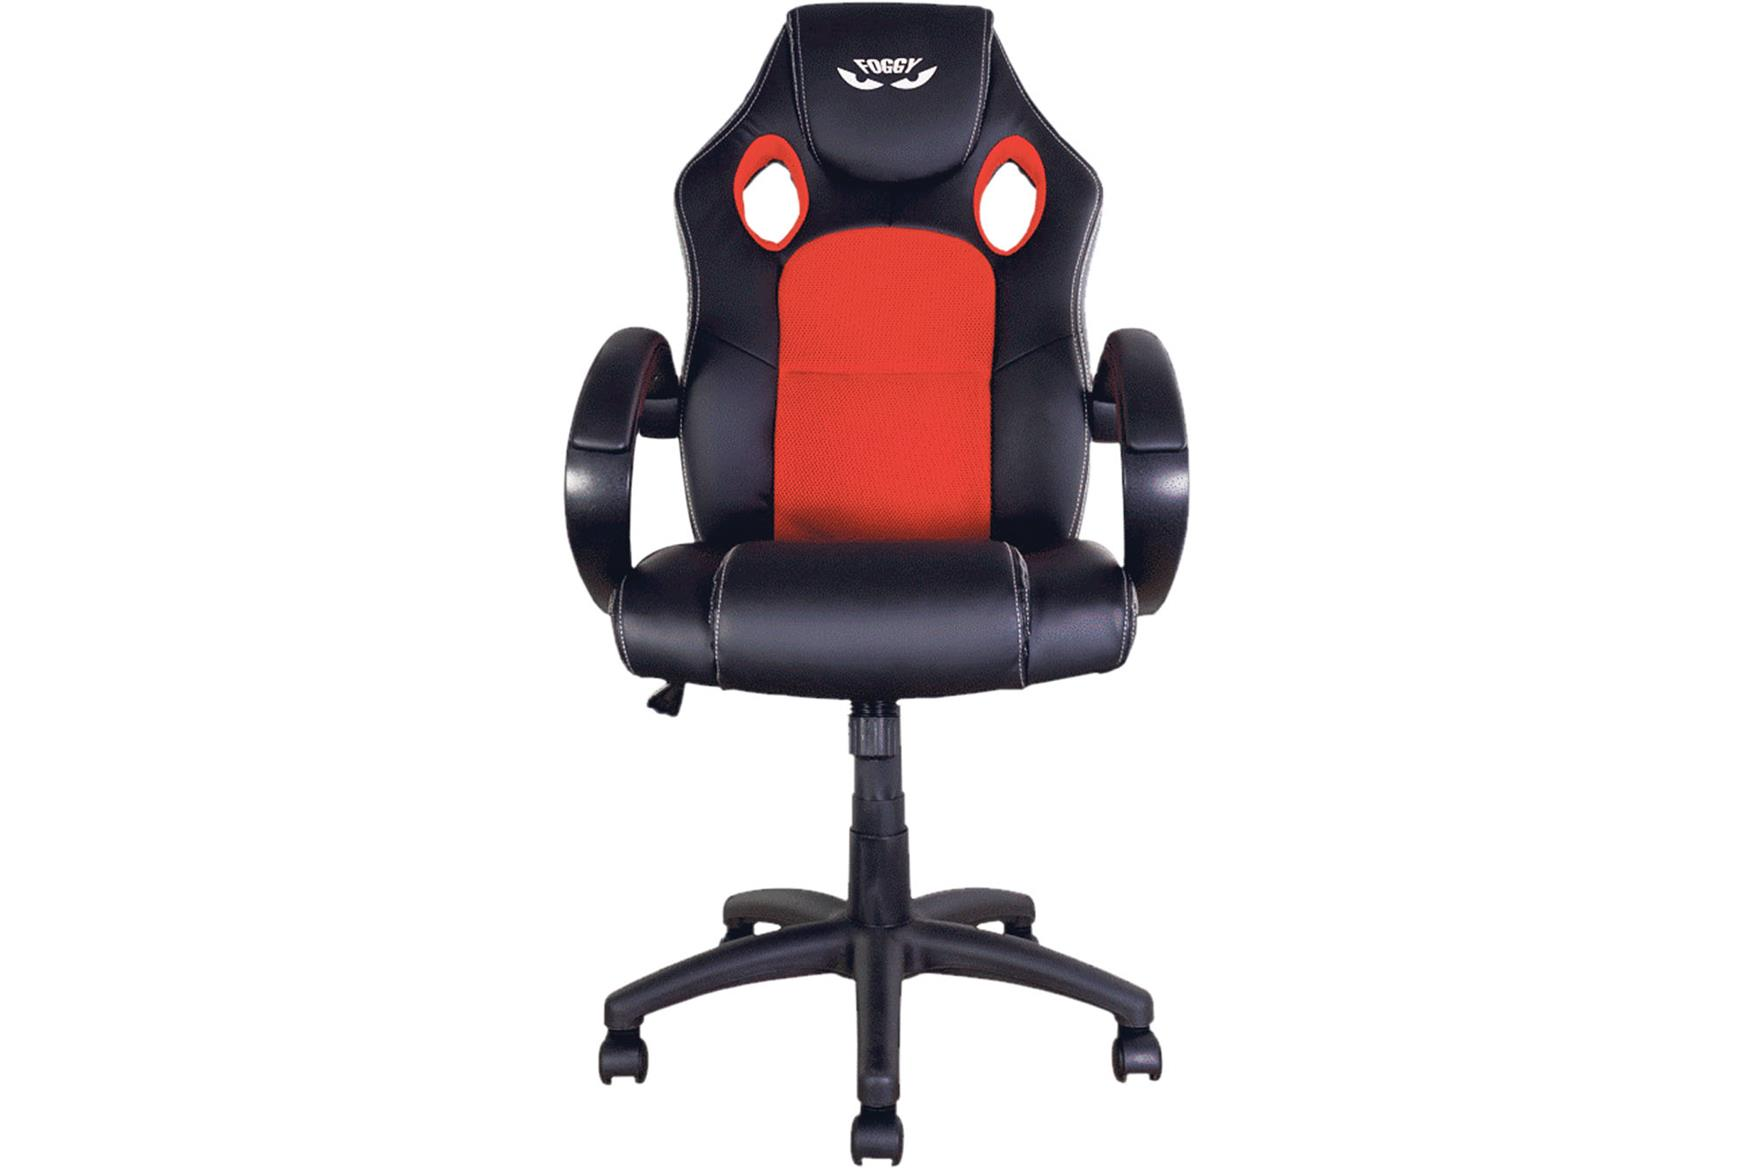 back office fabric mesh fh chair var bicycle foxhunter executive sentinel itm computer high desk swivel